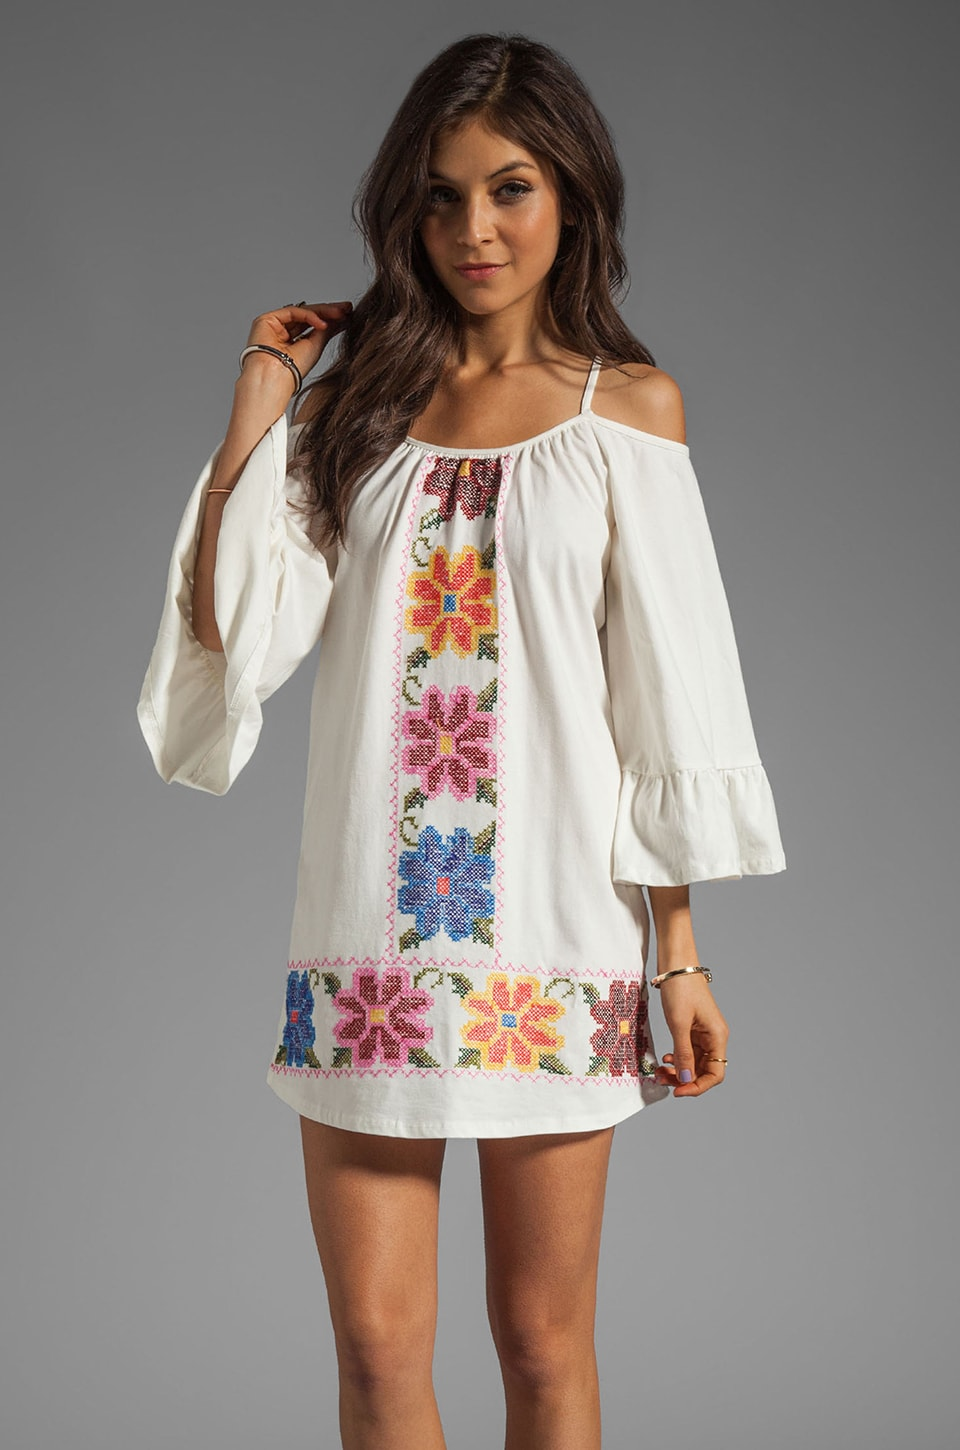 VAVA by Joy Han Anna Embroidered Dress in White